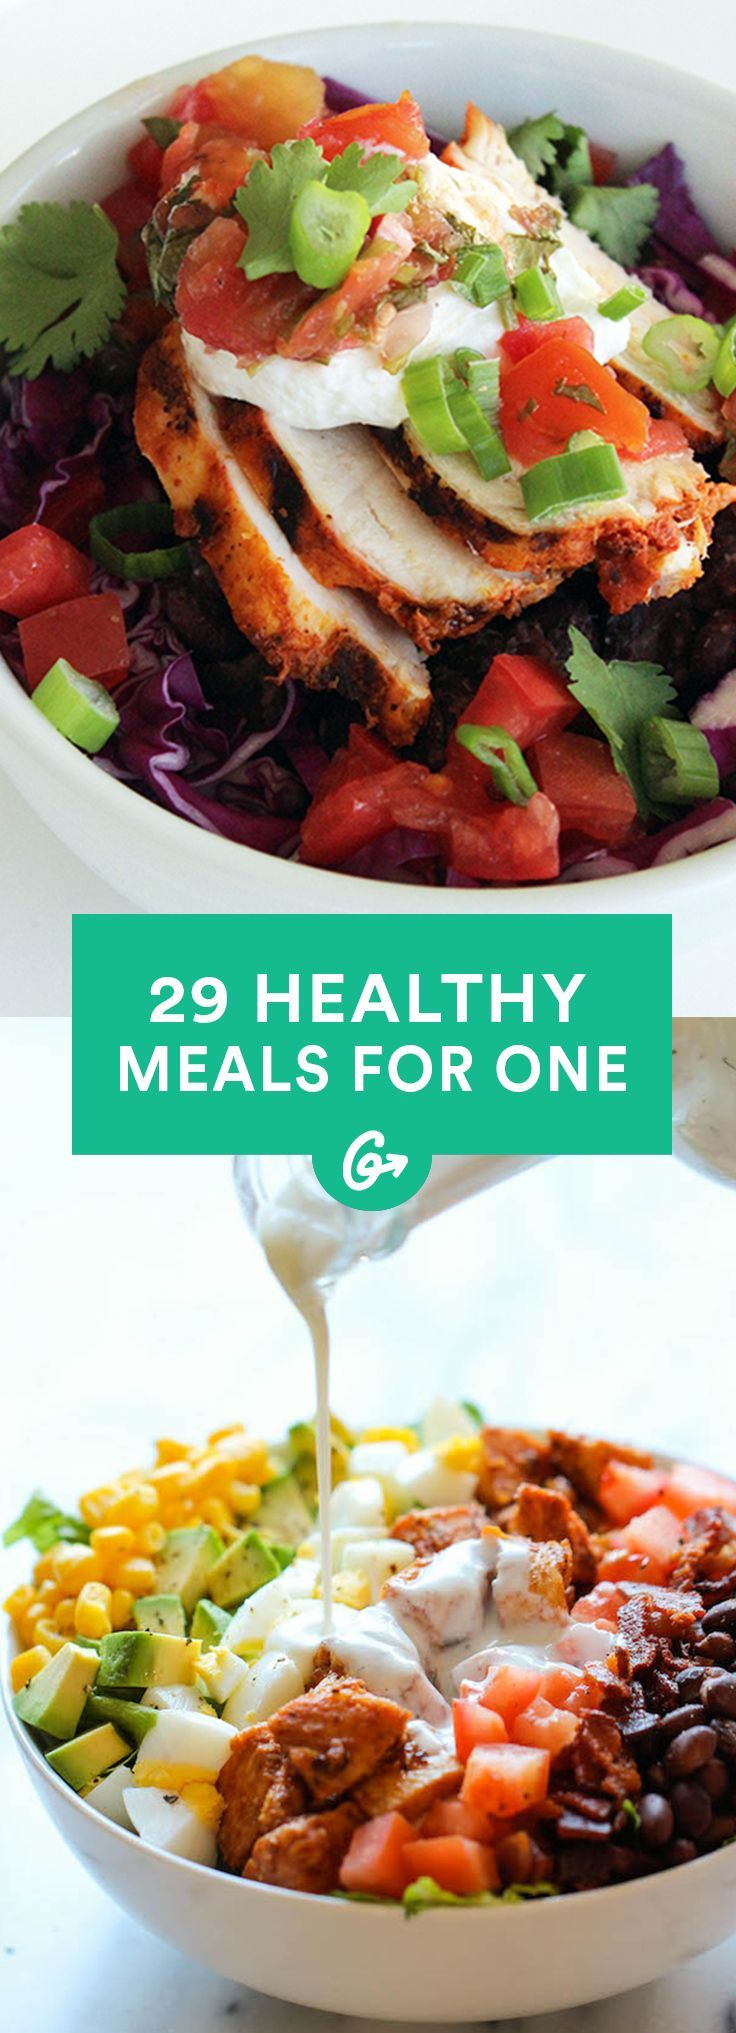 Cooking For One: 25 Insanely Easy, Healthy Meals You Can Make In Minutes